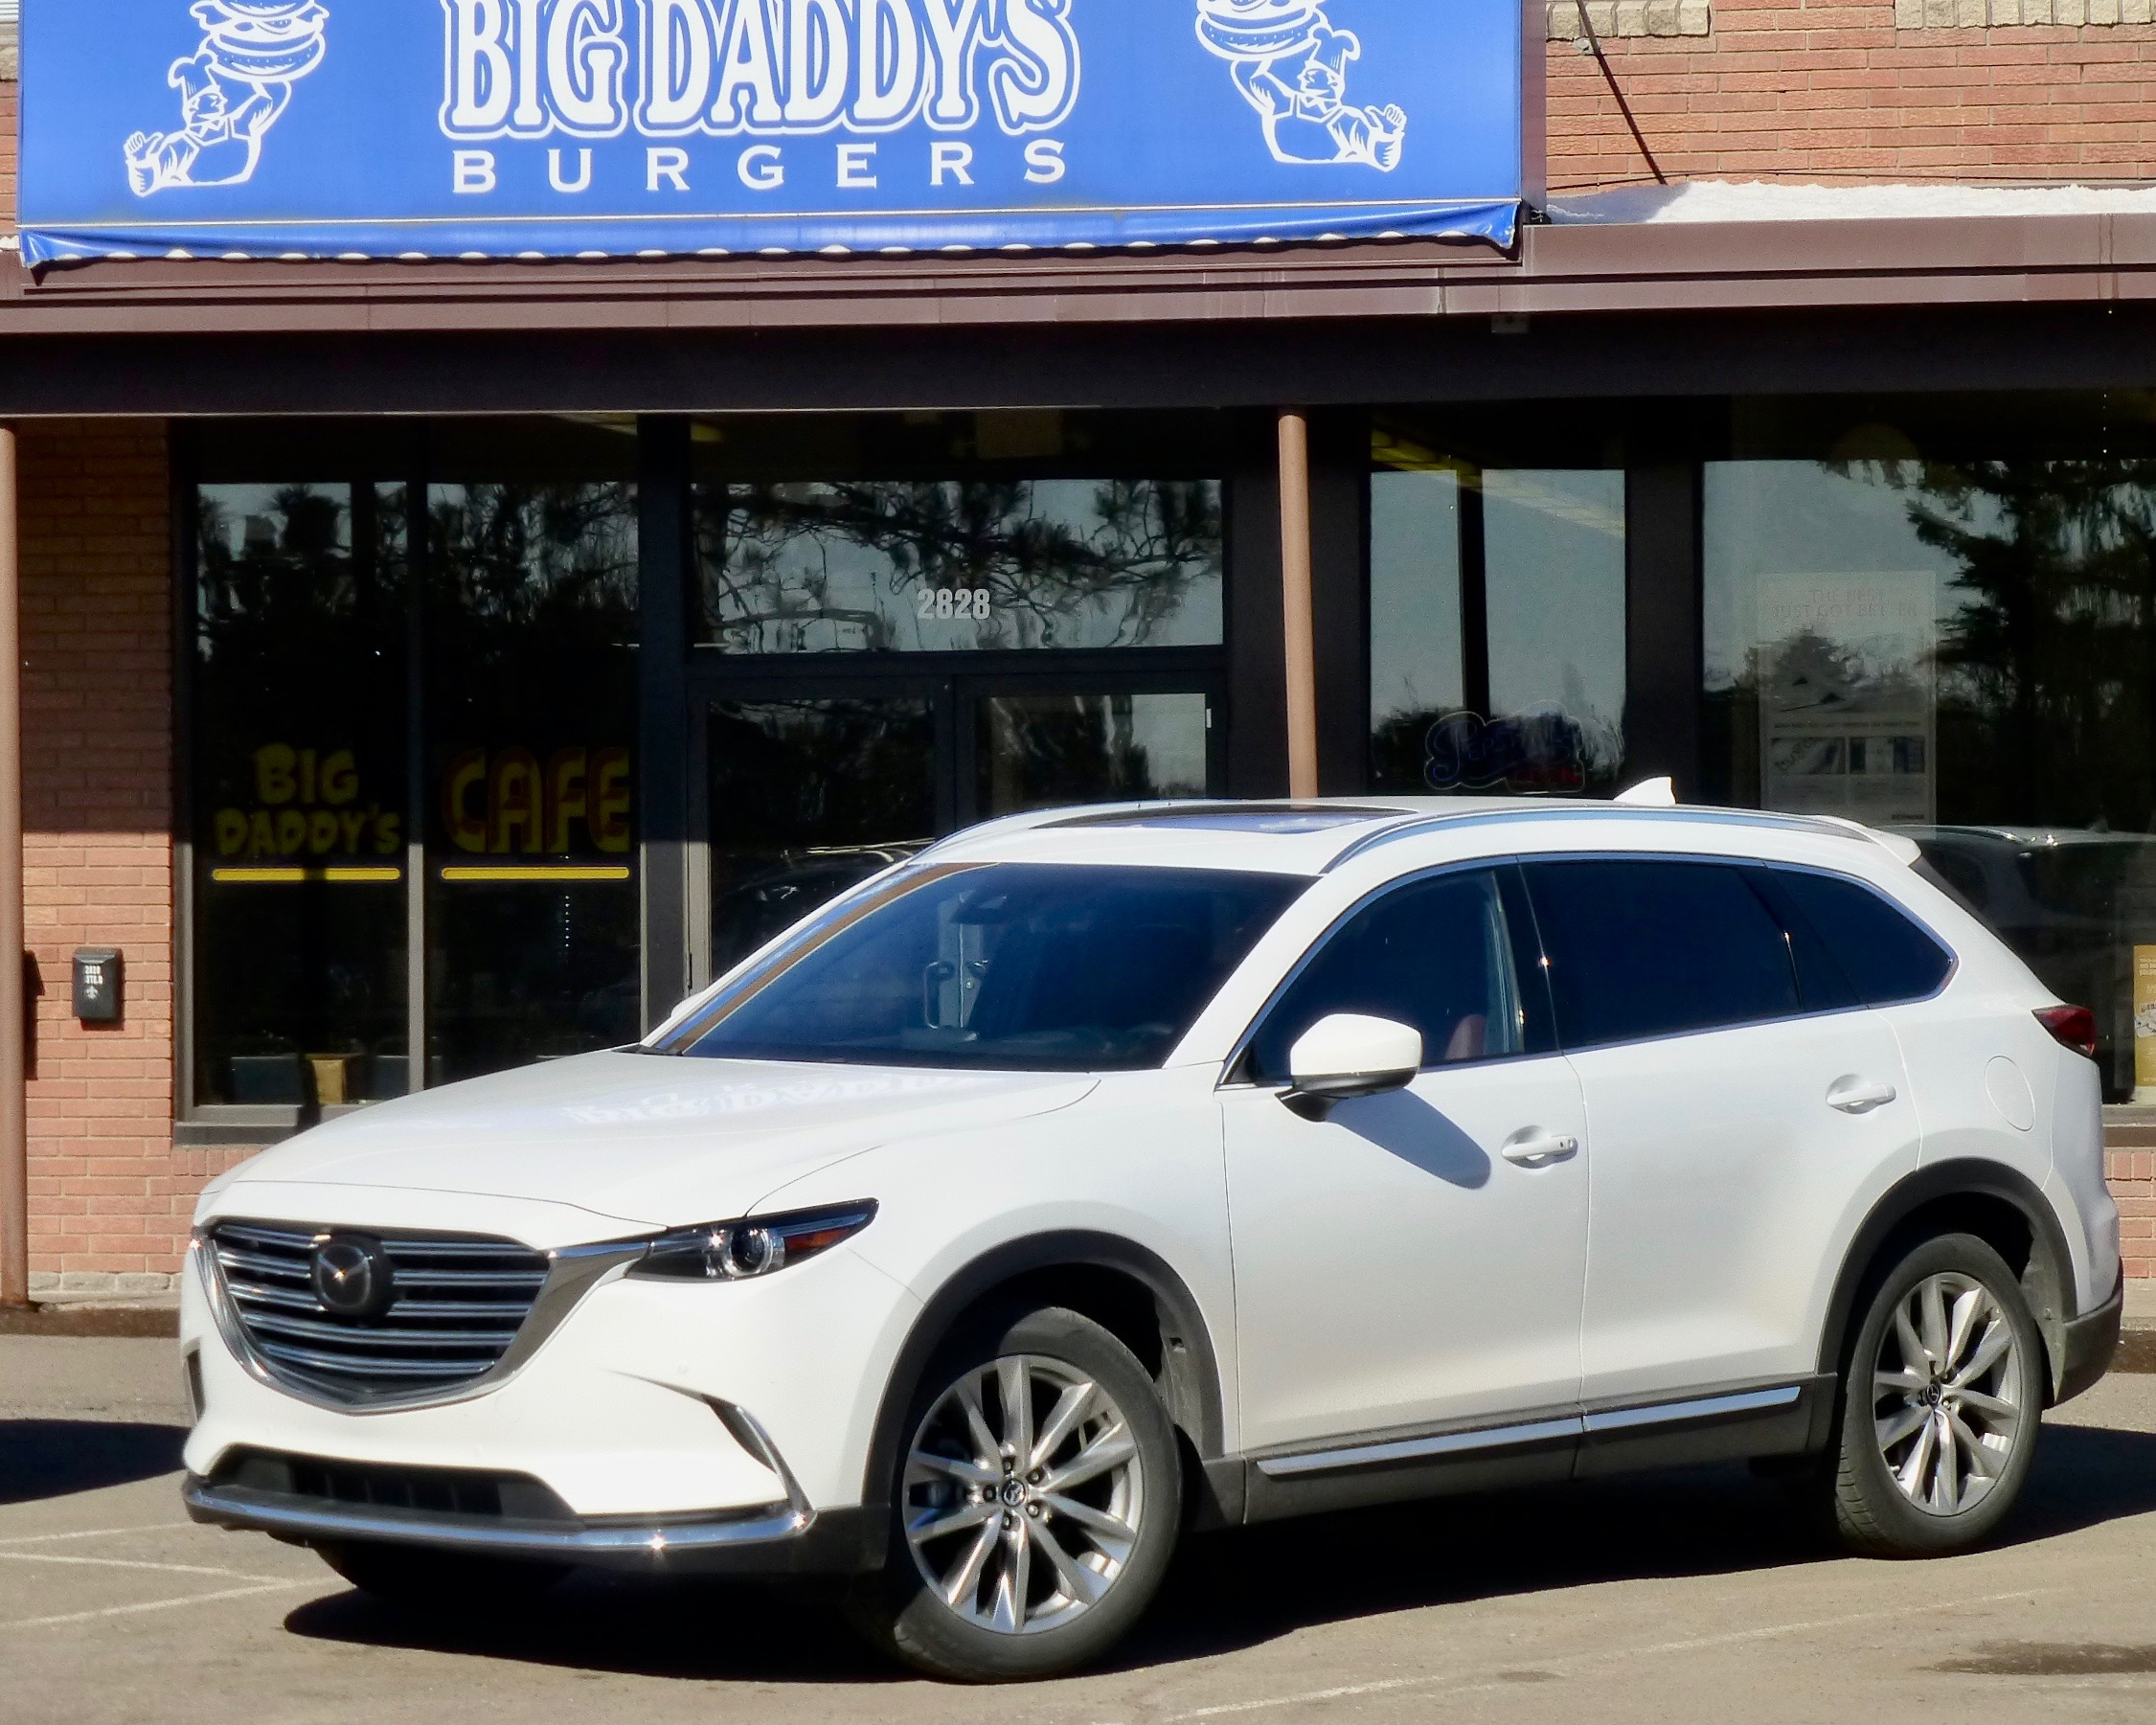 Sporty handling, roomy interior makes CX-9 perfect way to haul seven for burgers.